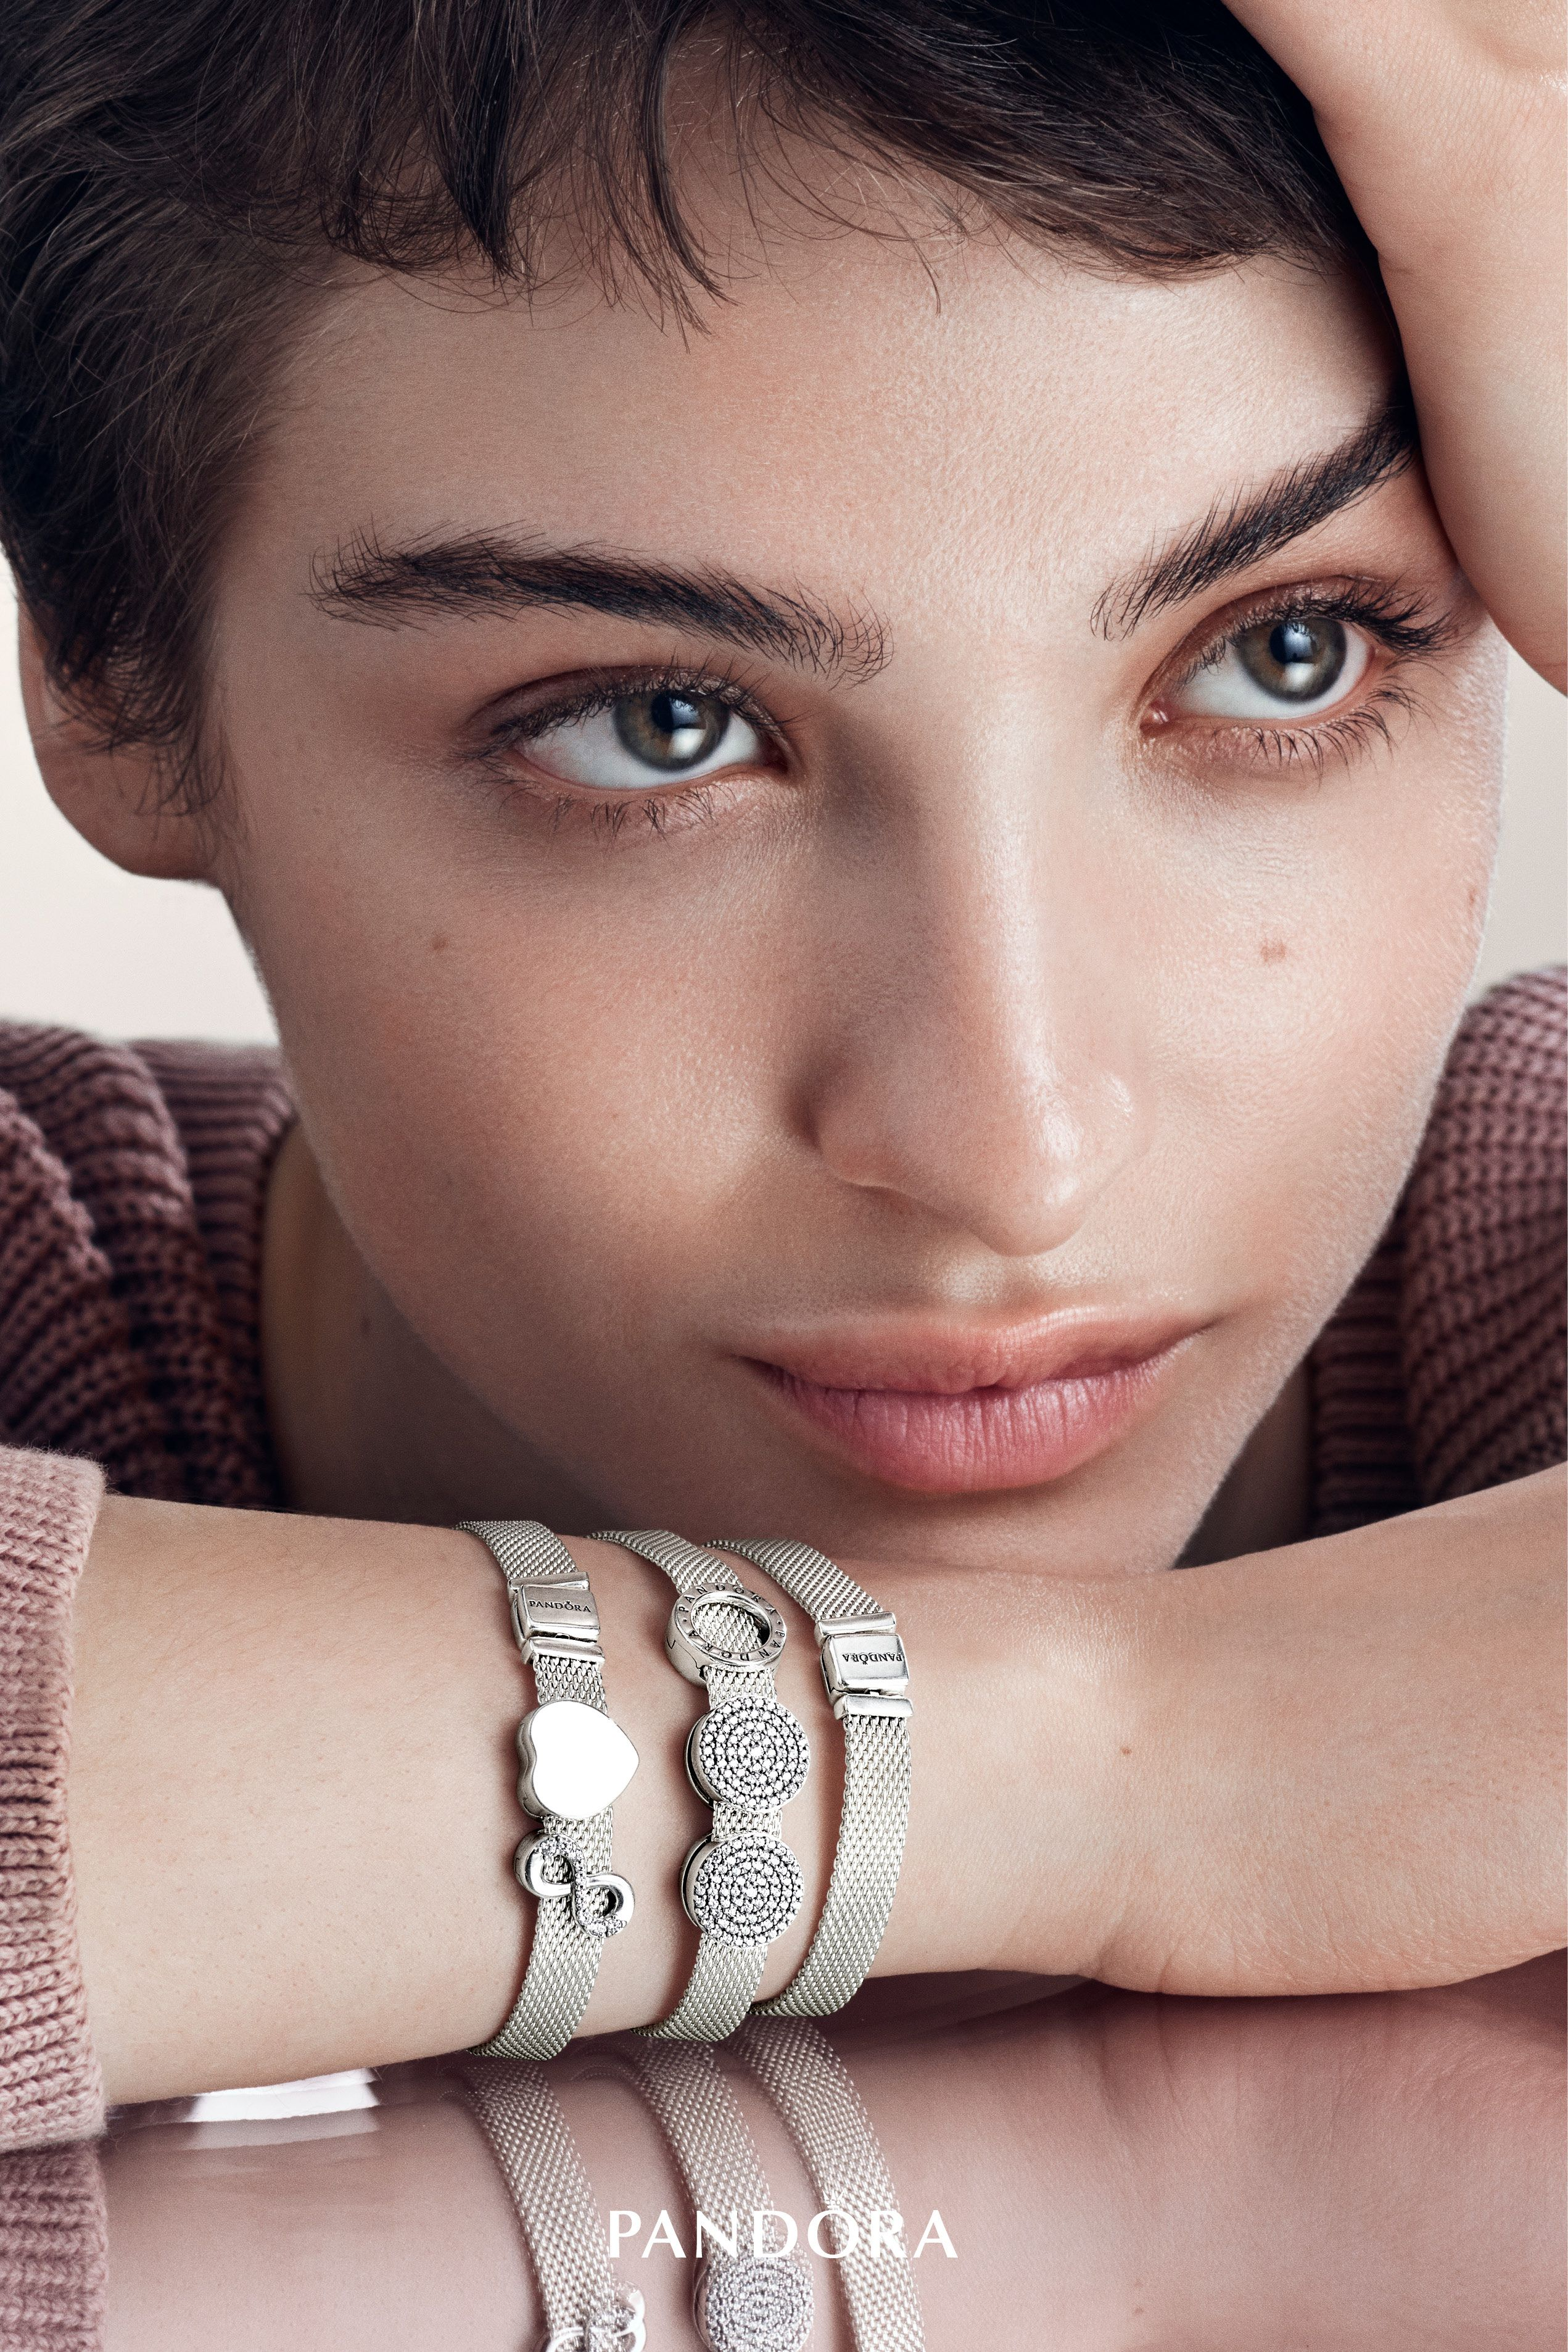 Express How It Feels To Be You With The New Pandora Reflexions Bracelet In Cool Sterling Silver Offer Pandora Bracelet Designs Pandora Jewelry Pandora Jewlery